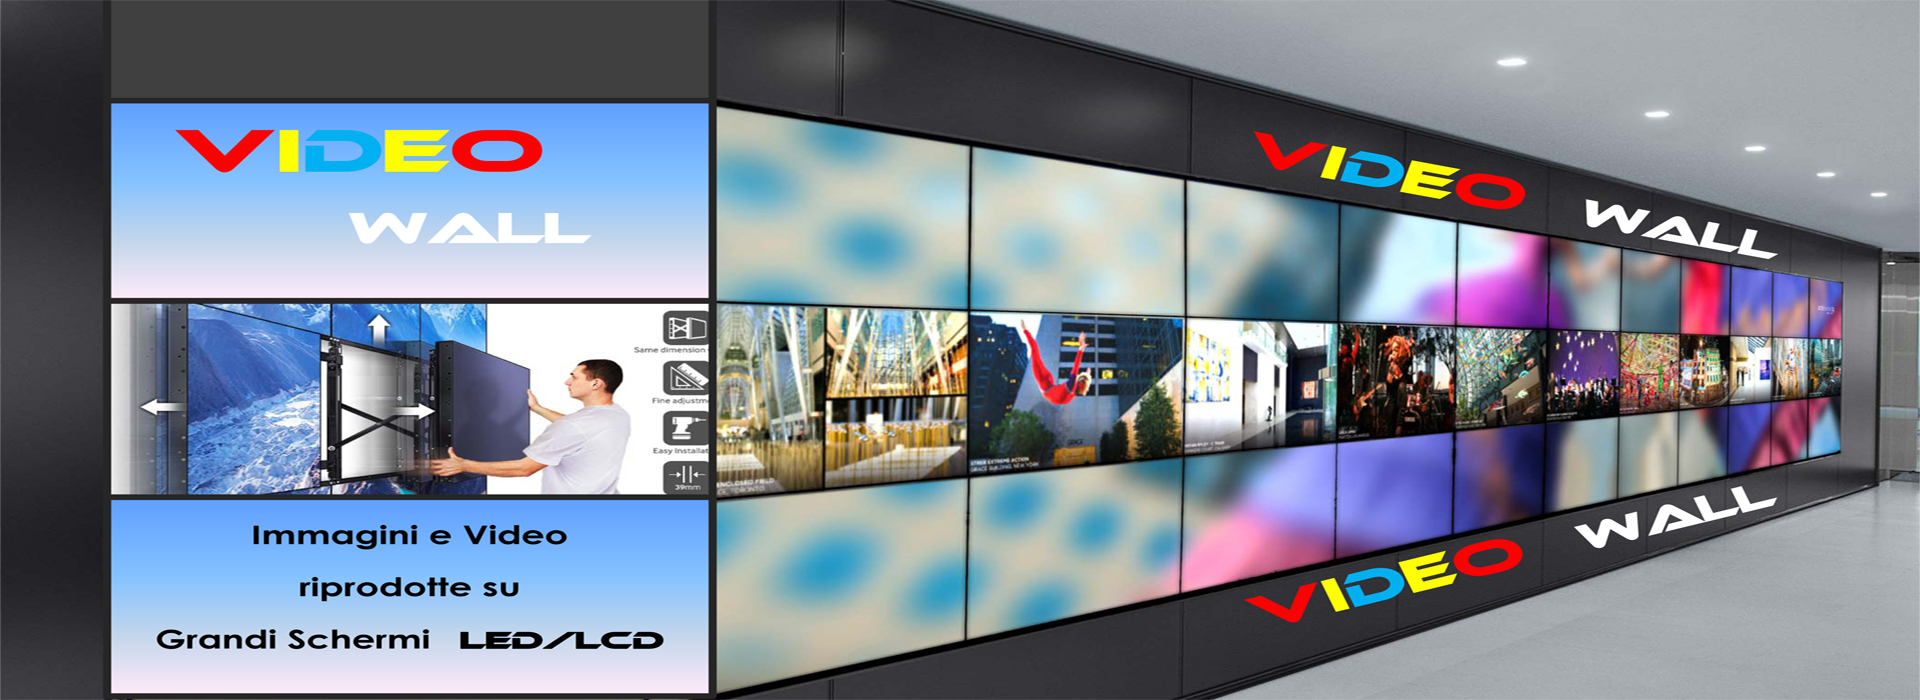 doc 6 video wall